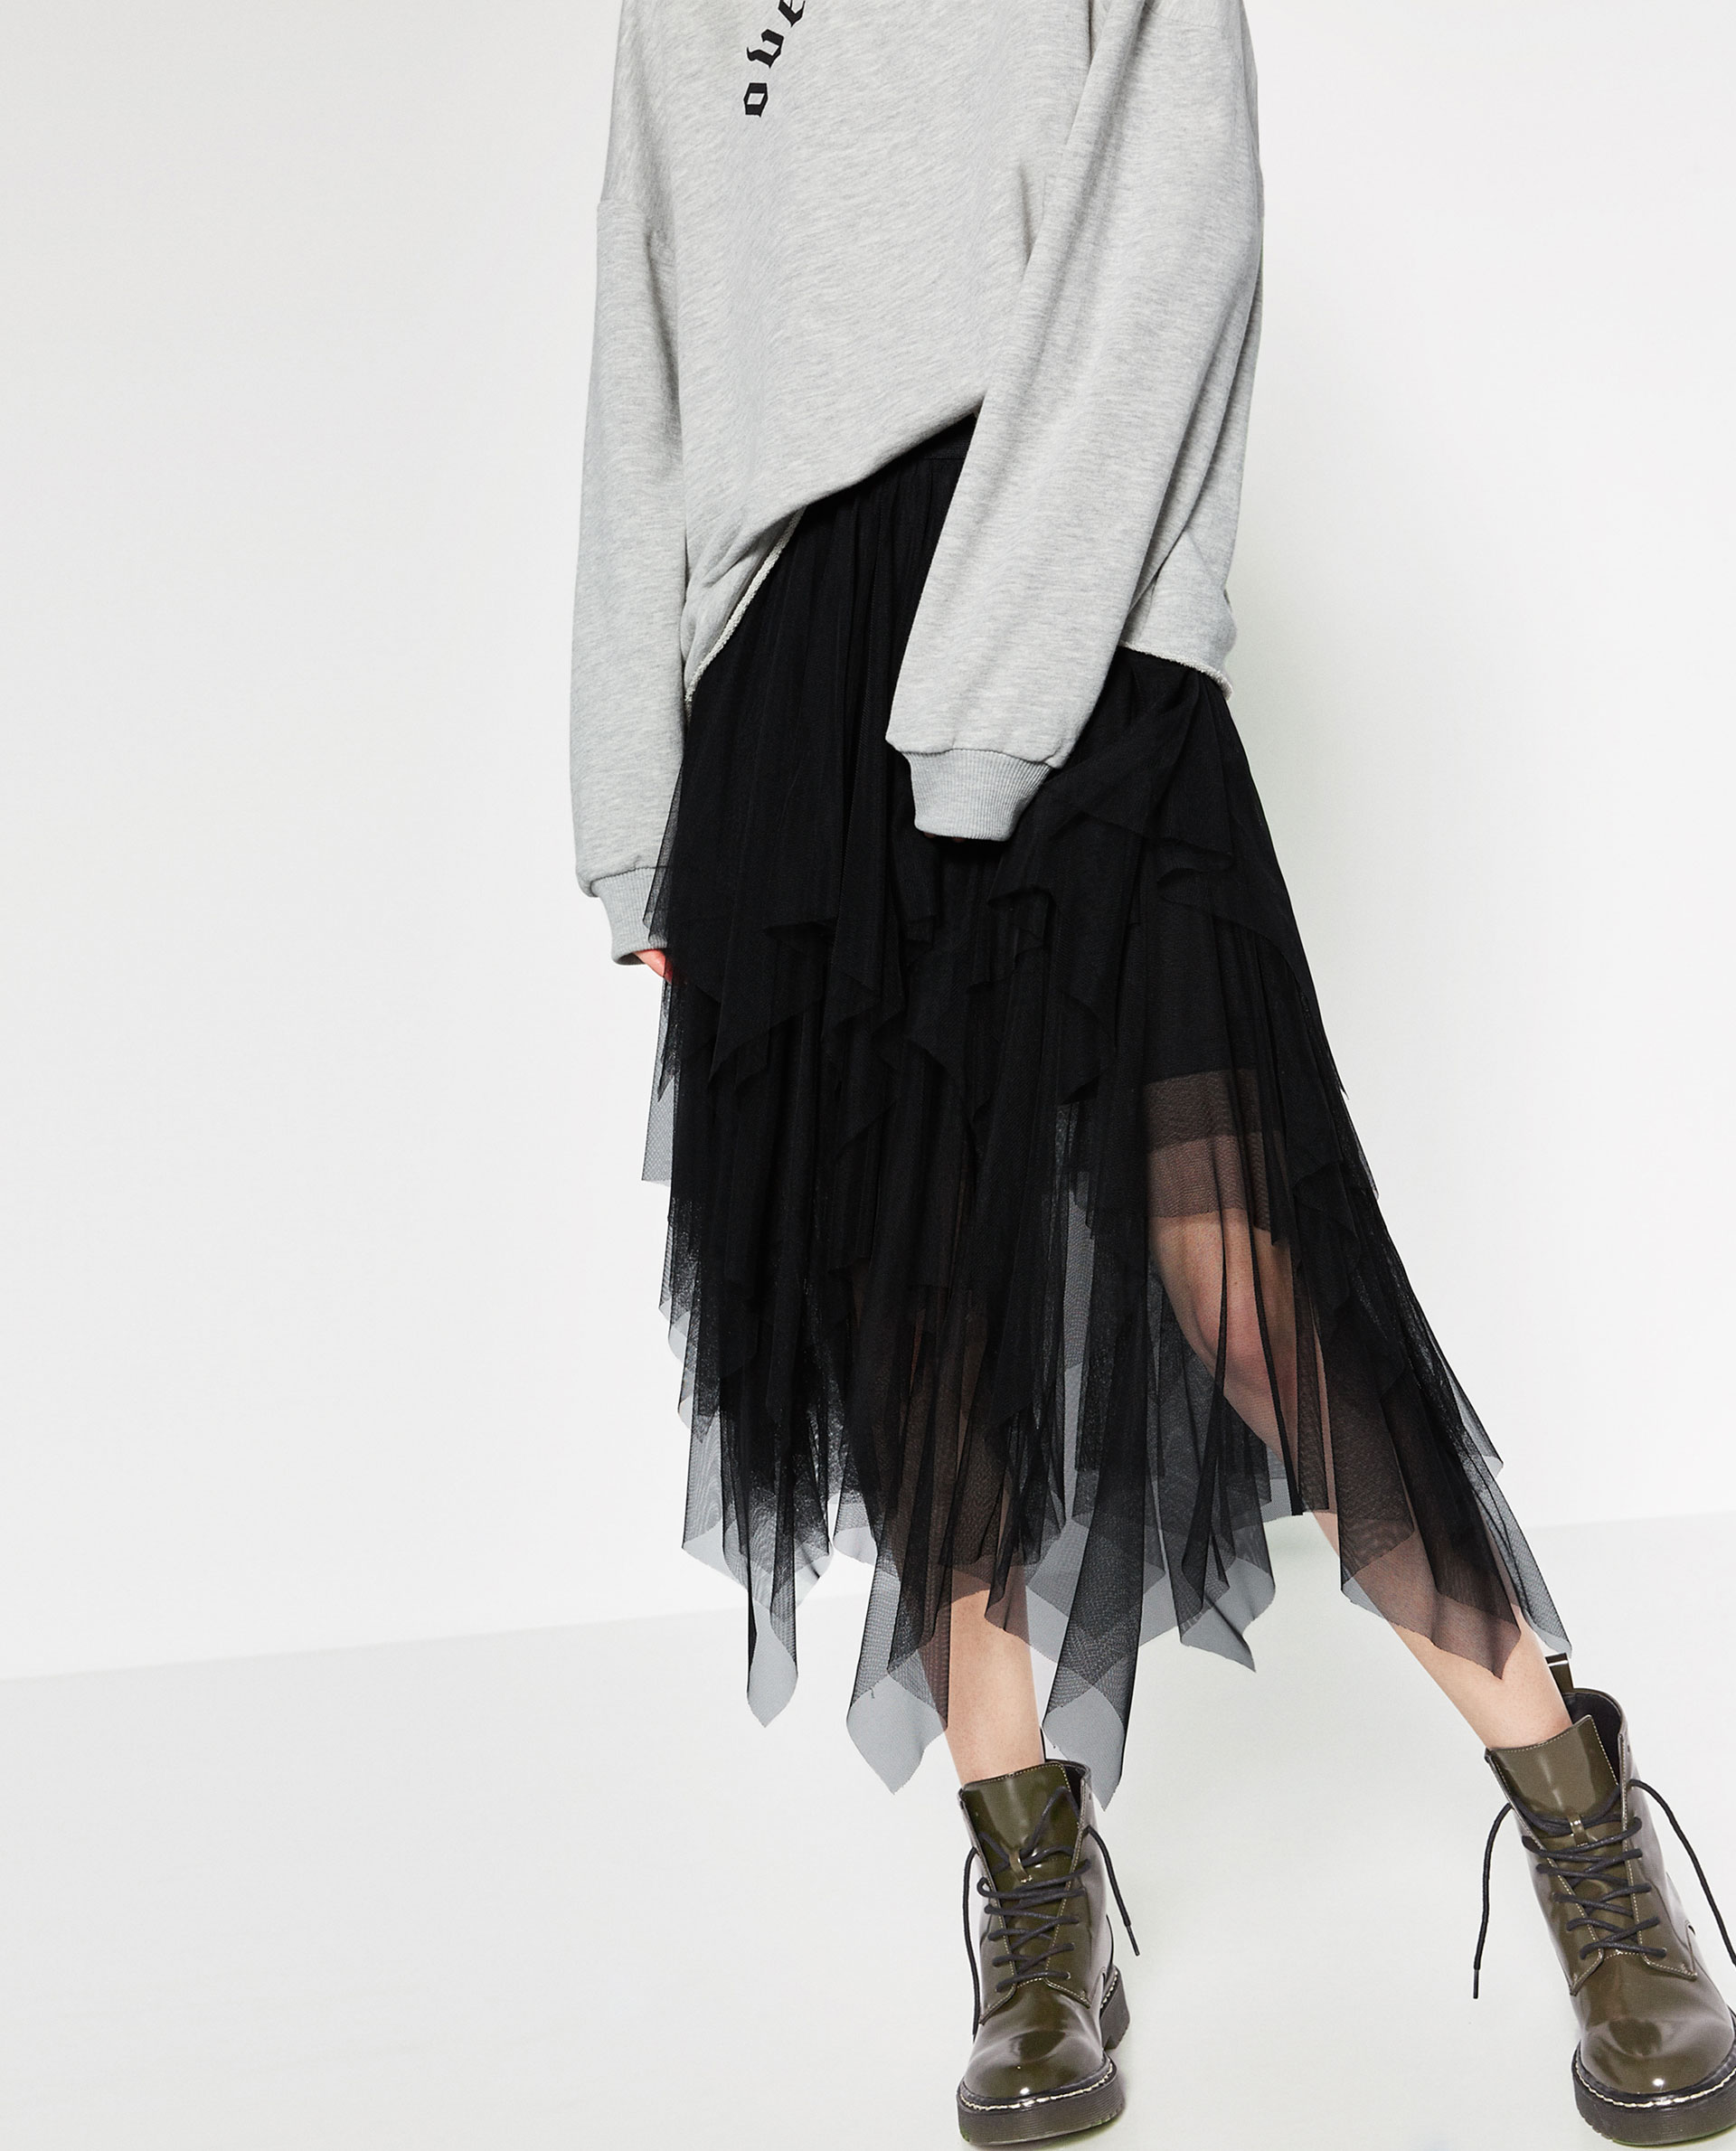 zara, tulle skirt, black, sweatshirt, gray, styling,